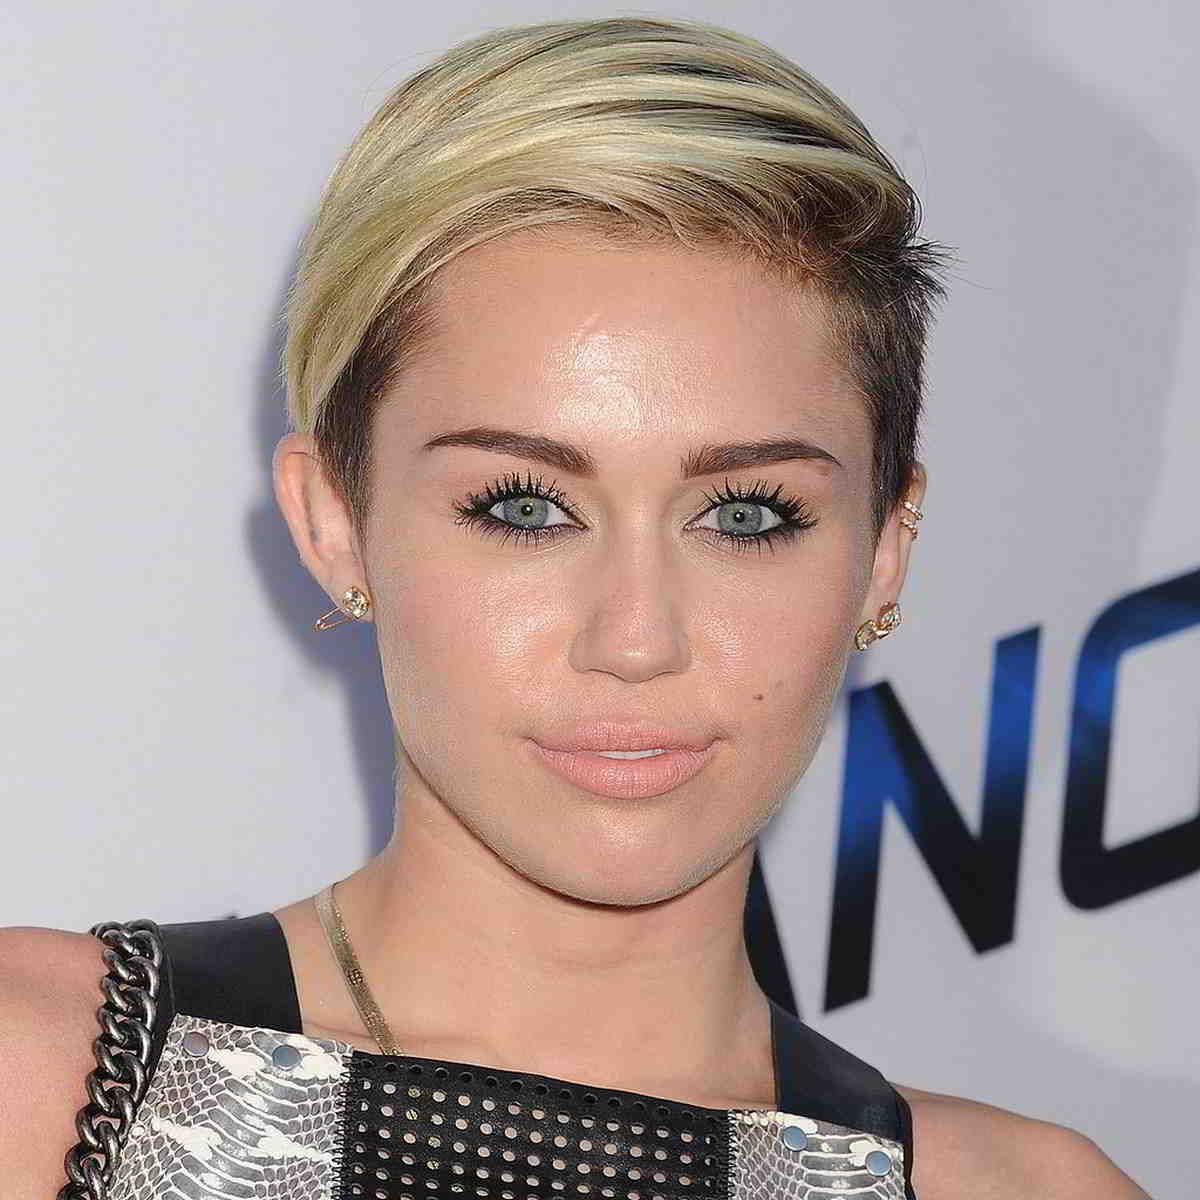 Miley cyrus hairstyles are they nice for her simple hairstyle